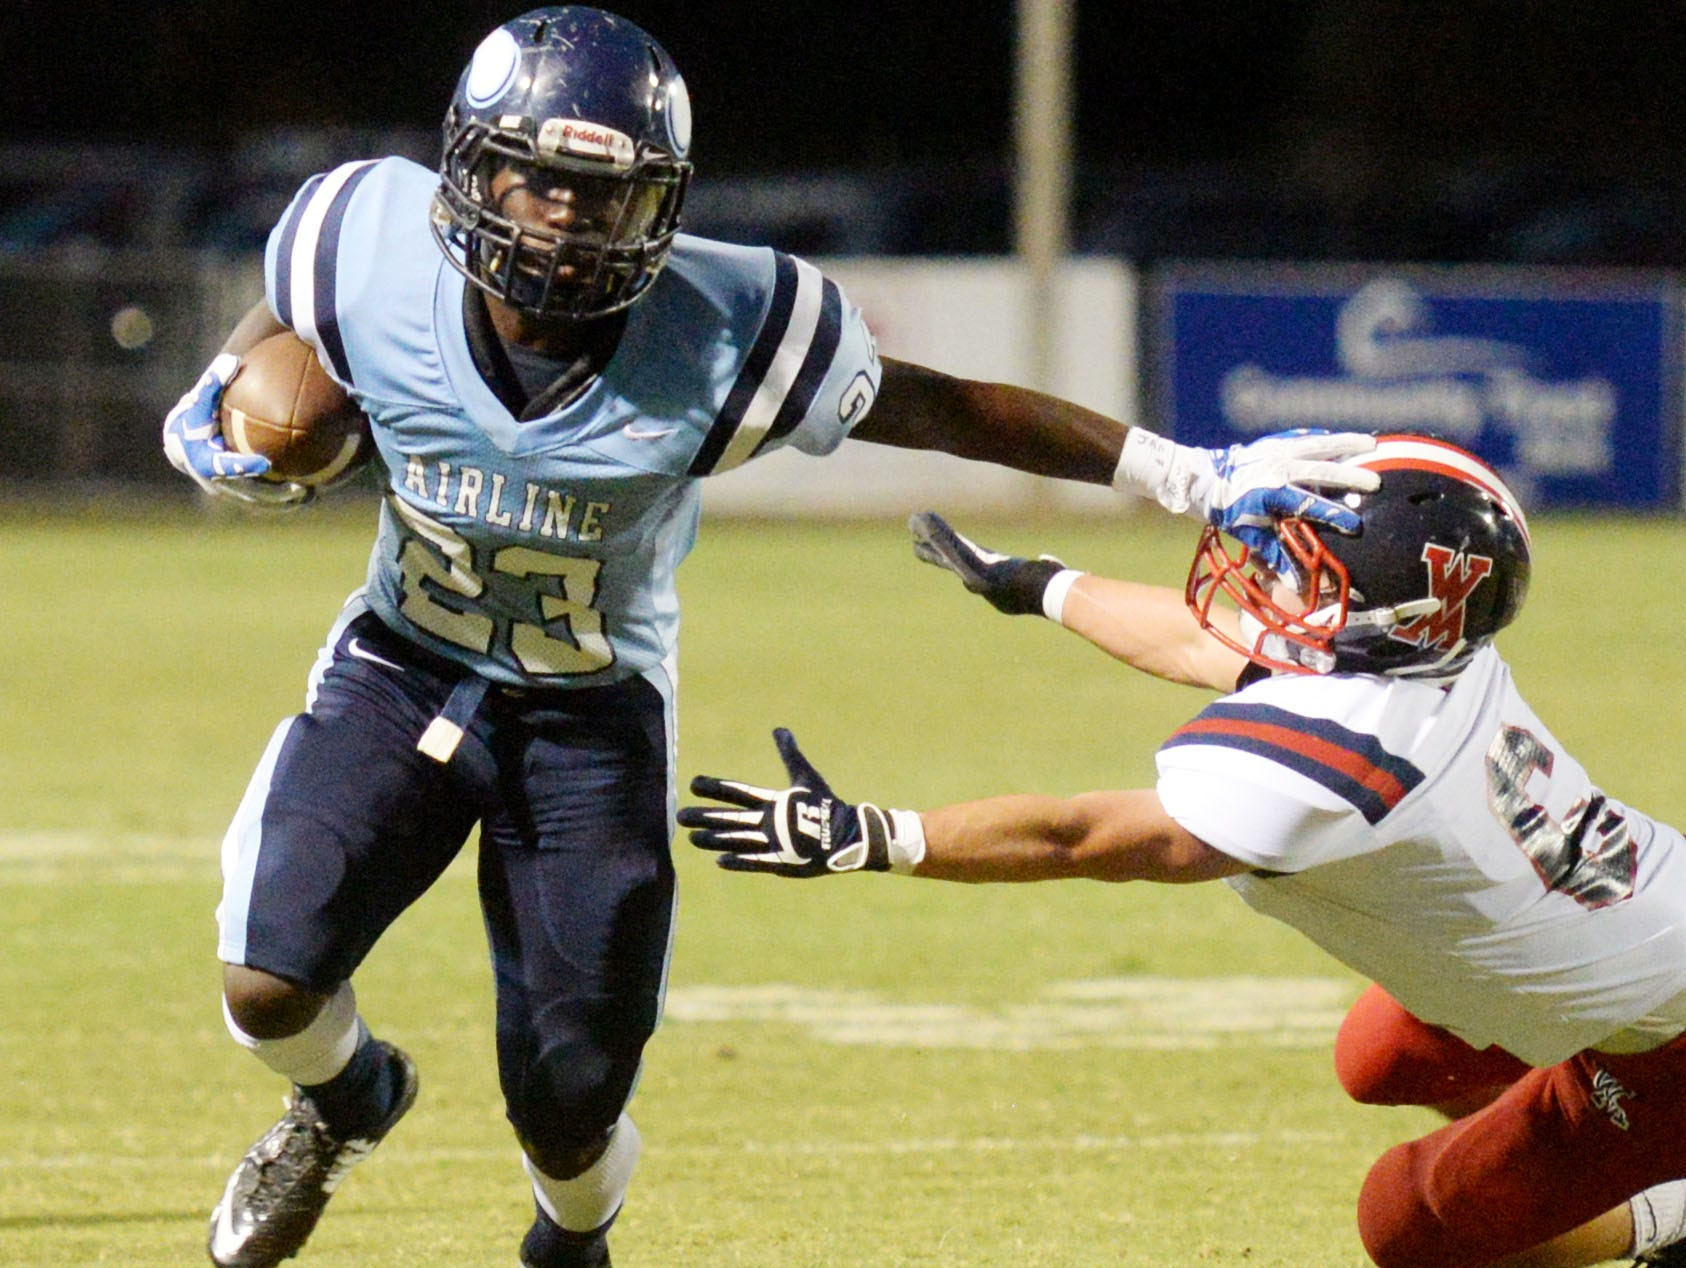 Airline's D'Kameron White(23) will be one of three area high school football standouts signing with Northeastern State during a Wednesday ceremony.